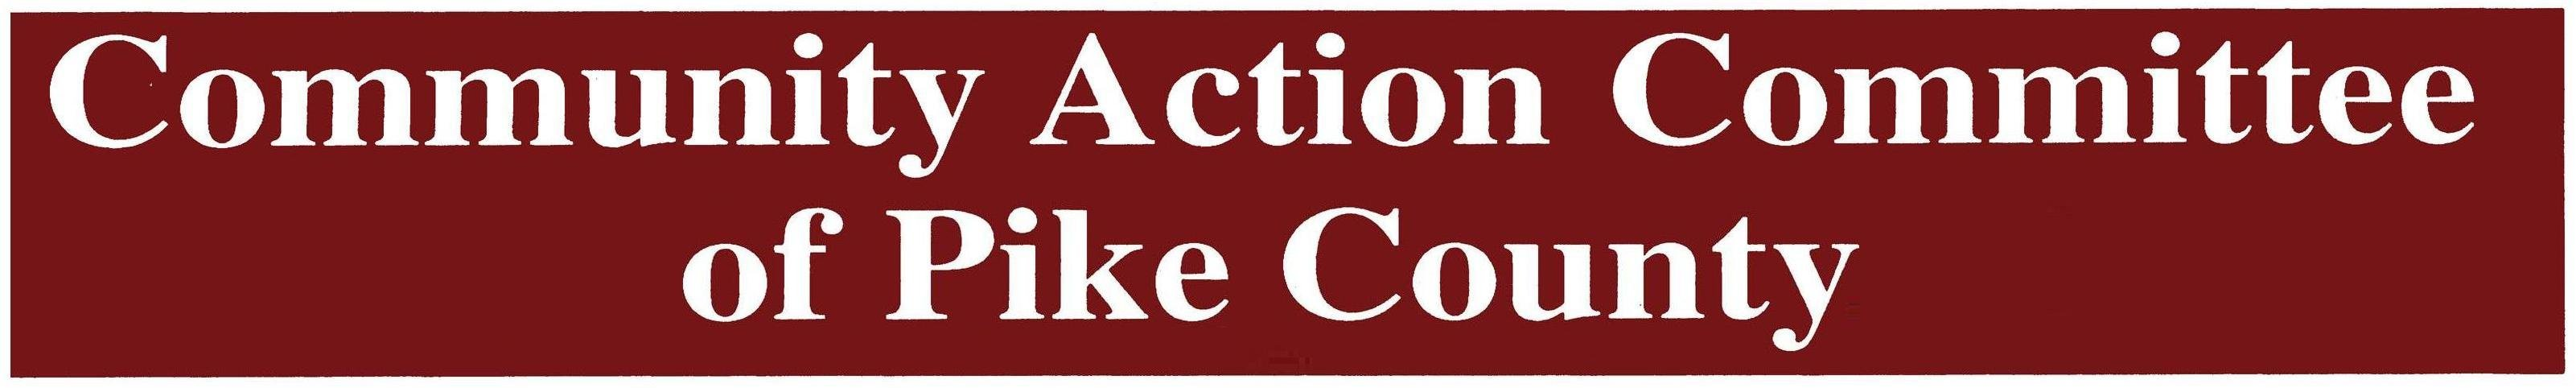 Community Action Committee of Pike County